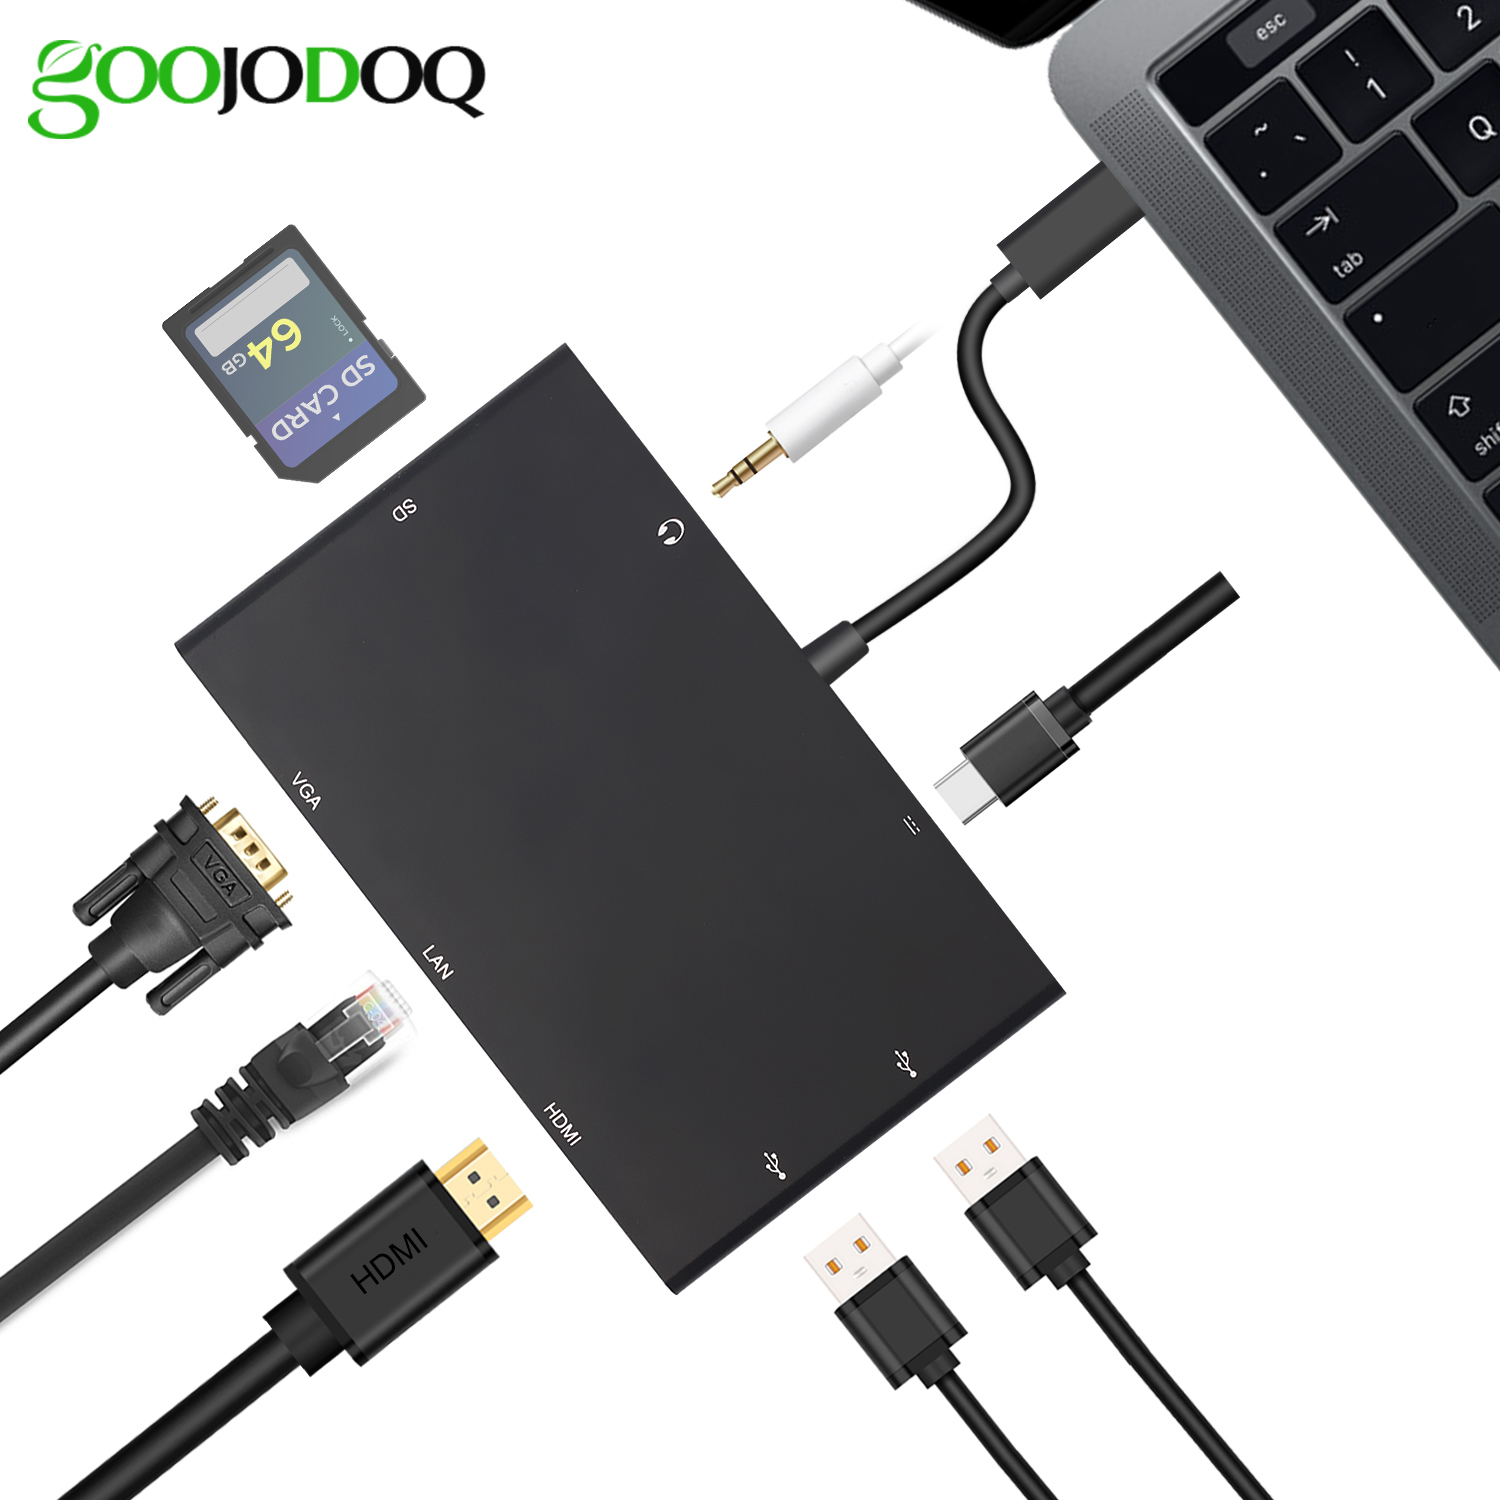 8 in 1 USB C Hub to HDMI VGA, USB-C Rj45 Gigabit Ethernet, 2 USB 3.0 & 3.5mm Audio Jack /Card Reader /Type C Charger for Macbook 668 usb 3 1 type c card reader